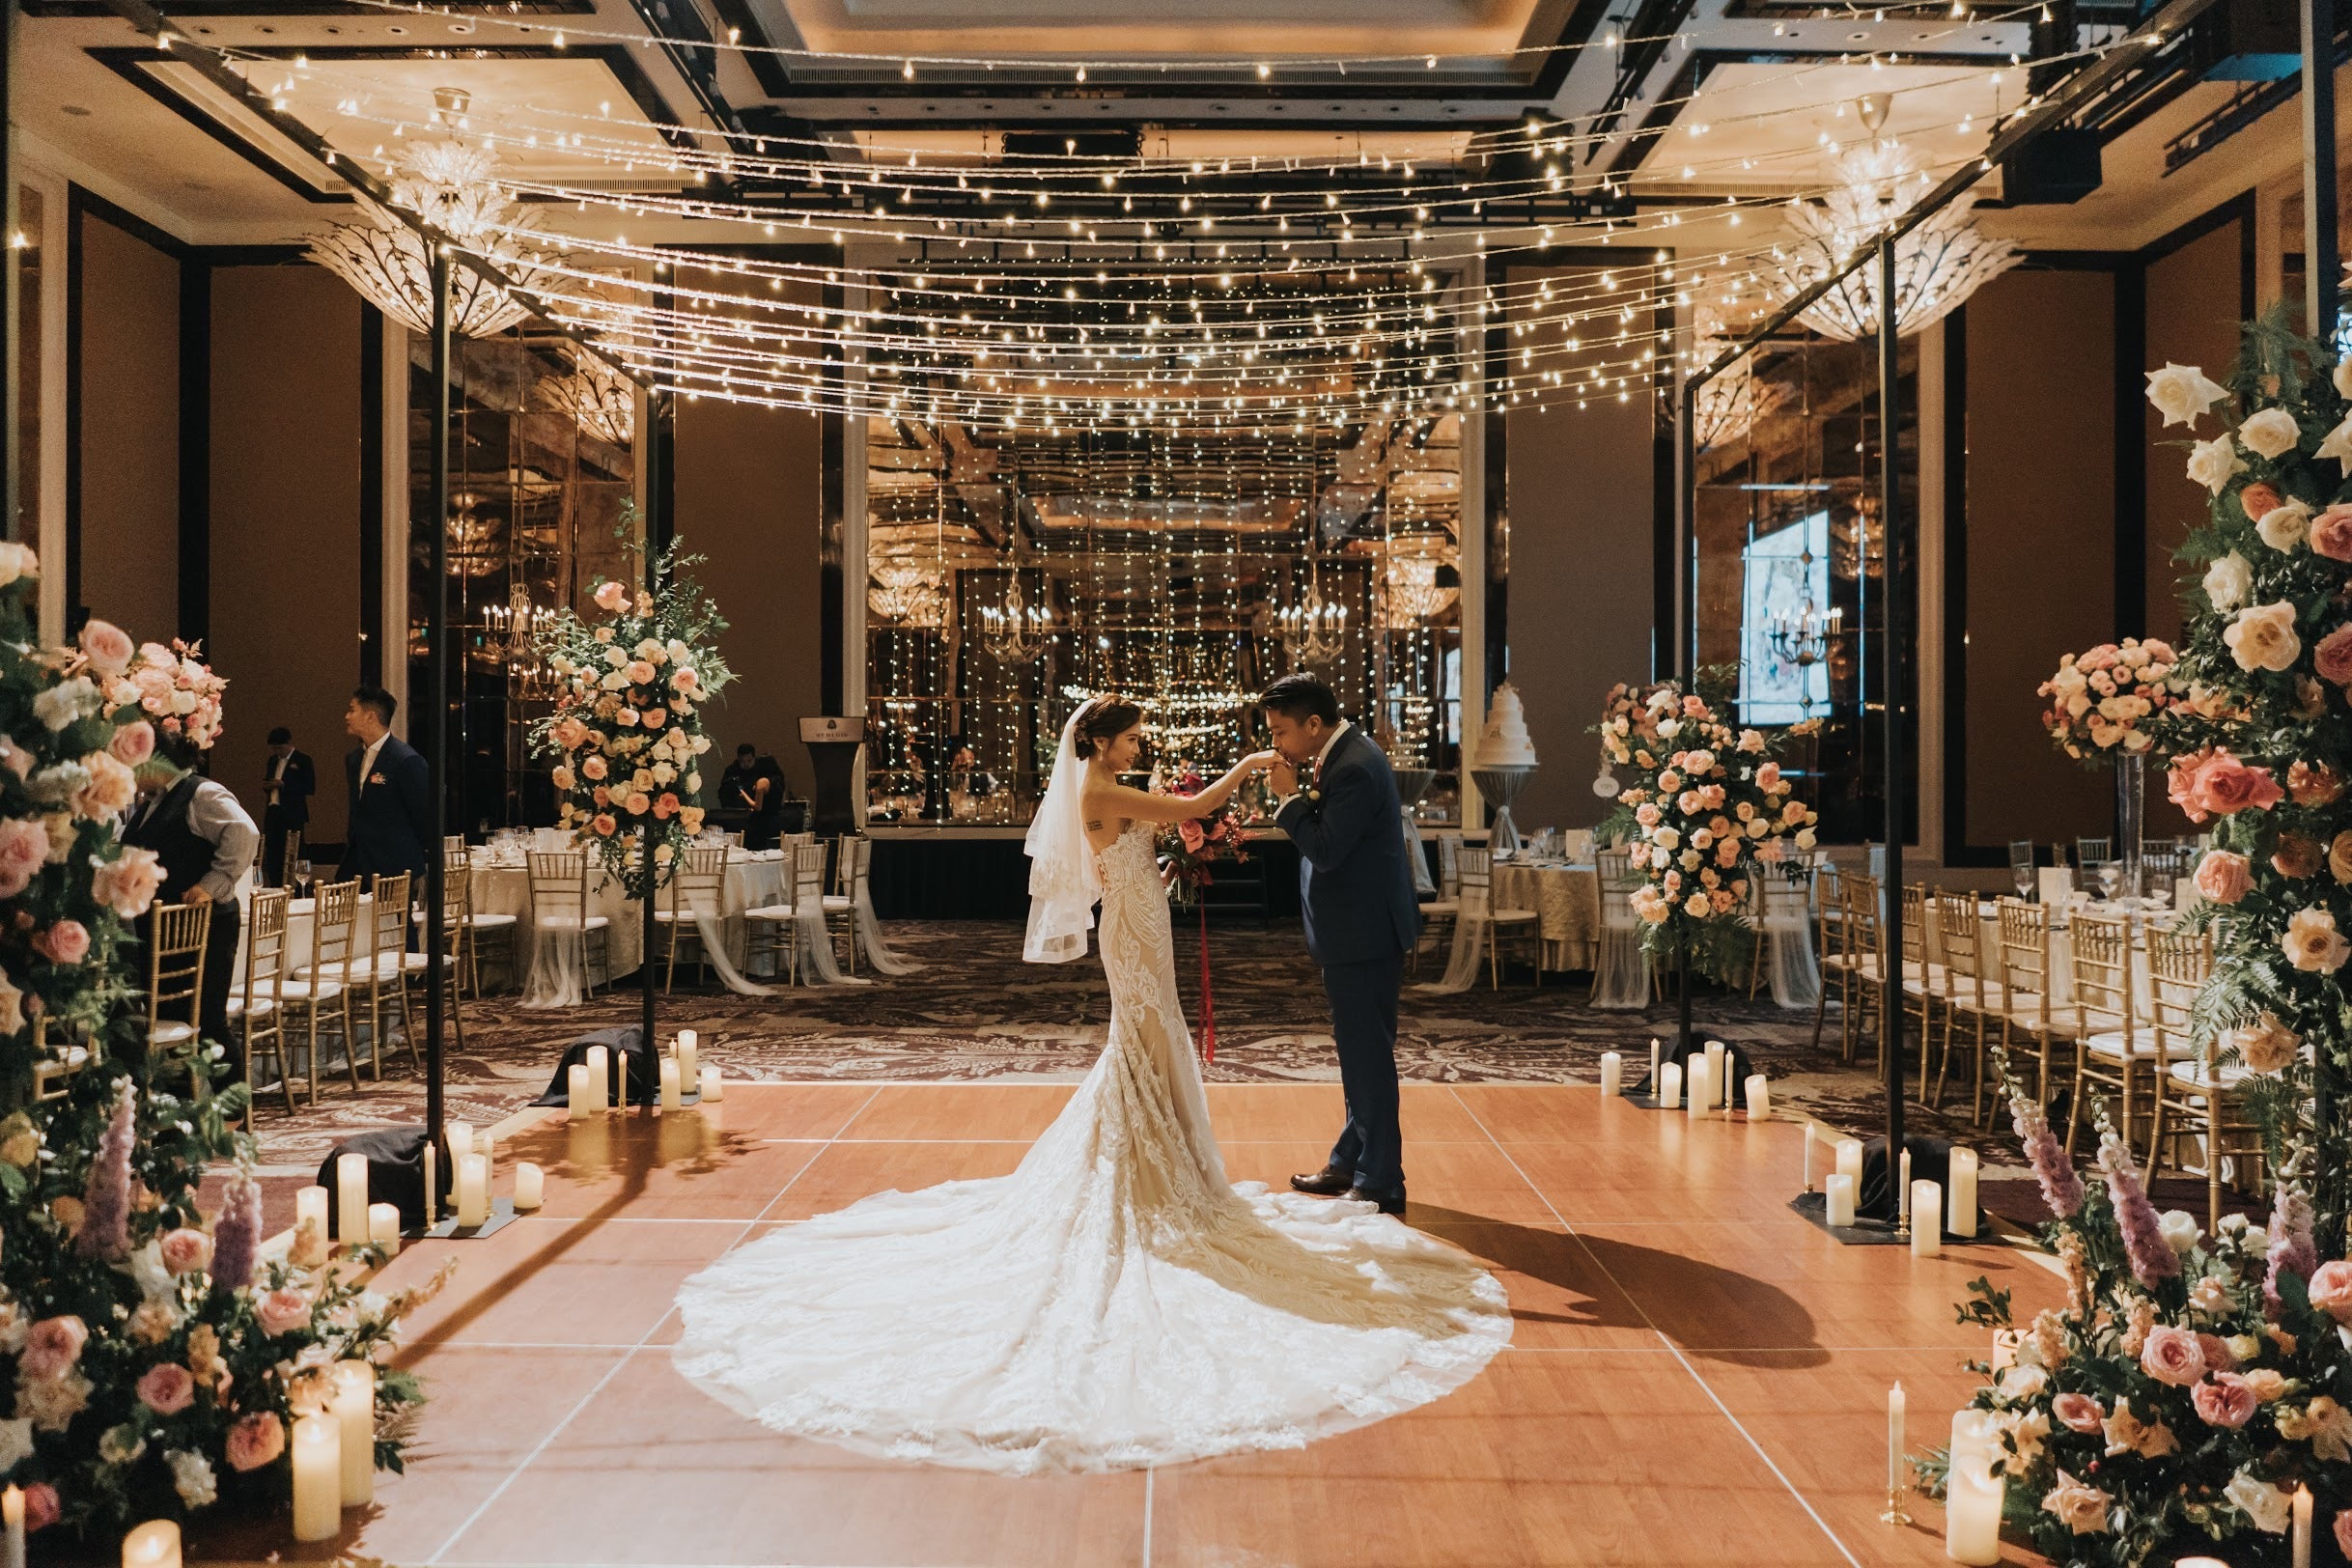 Romantic candles on structured wedding dance floor in St Regis Hotel main ballroom with fairy string lights decoration